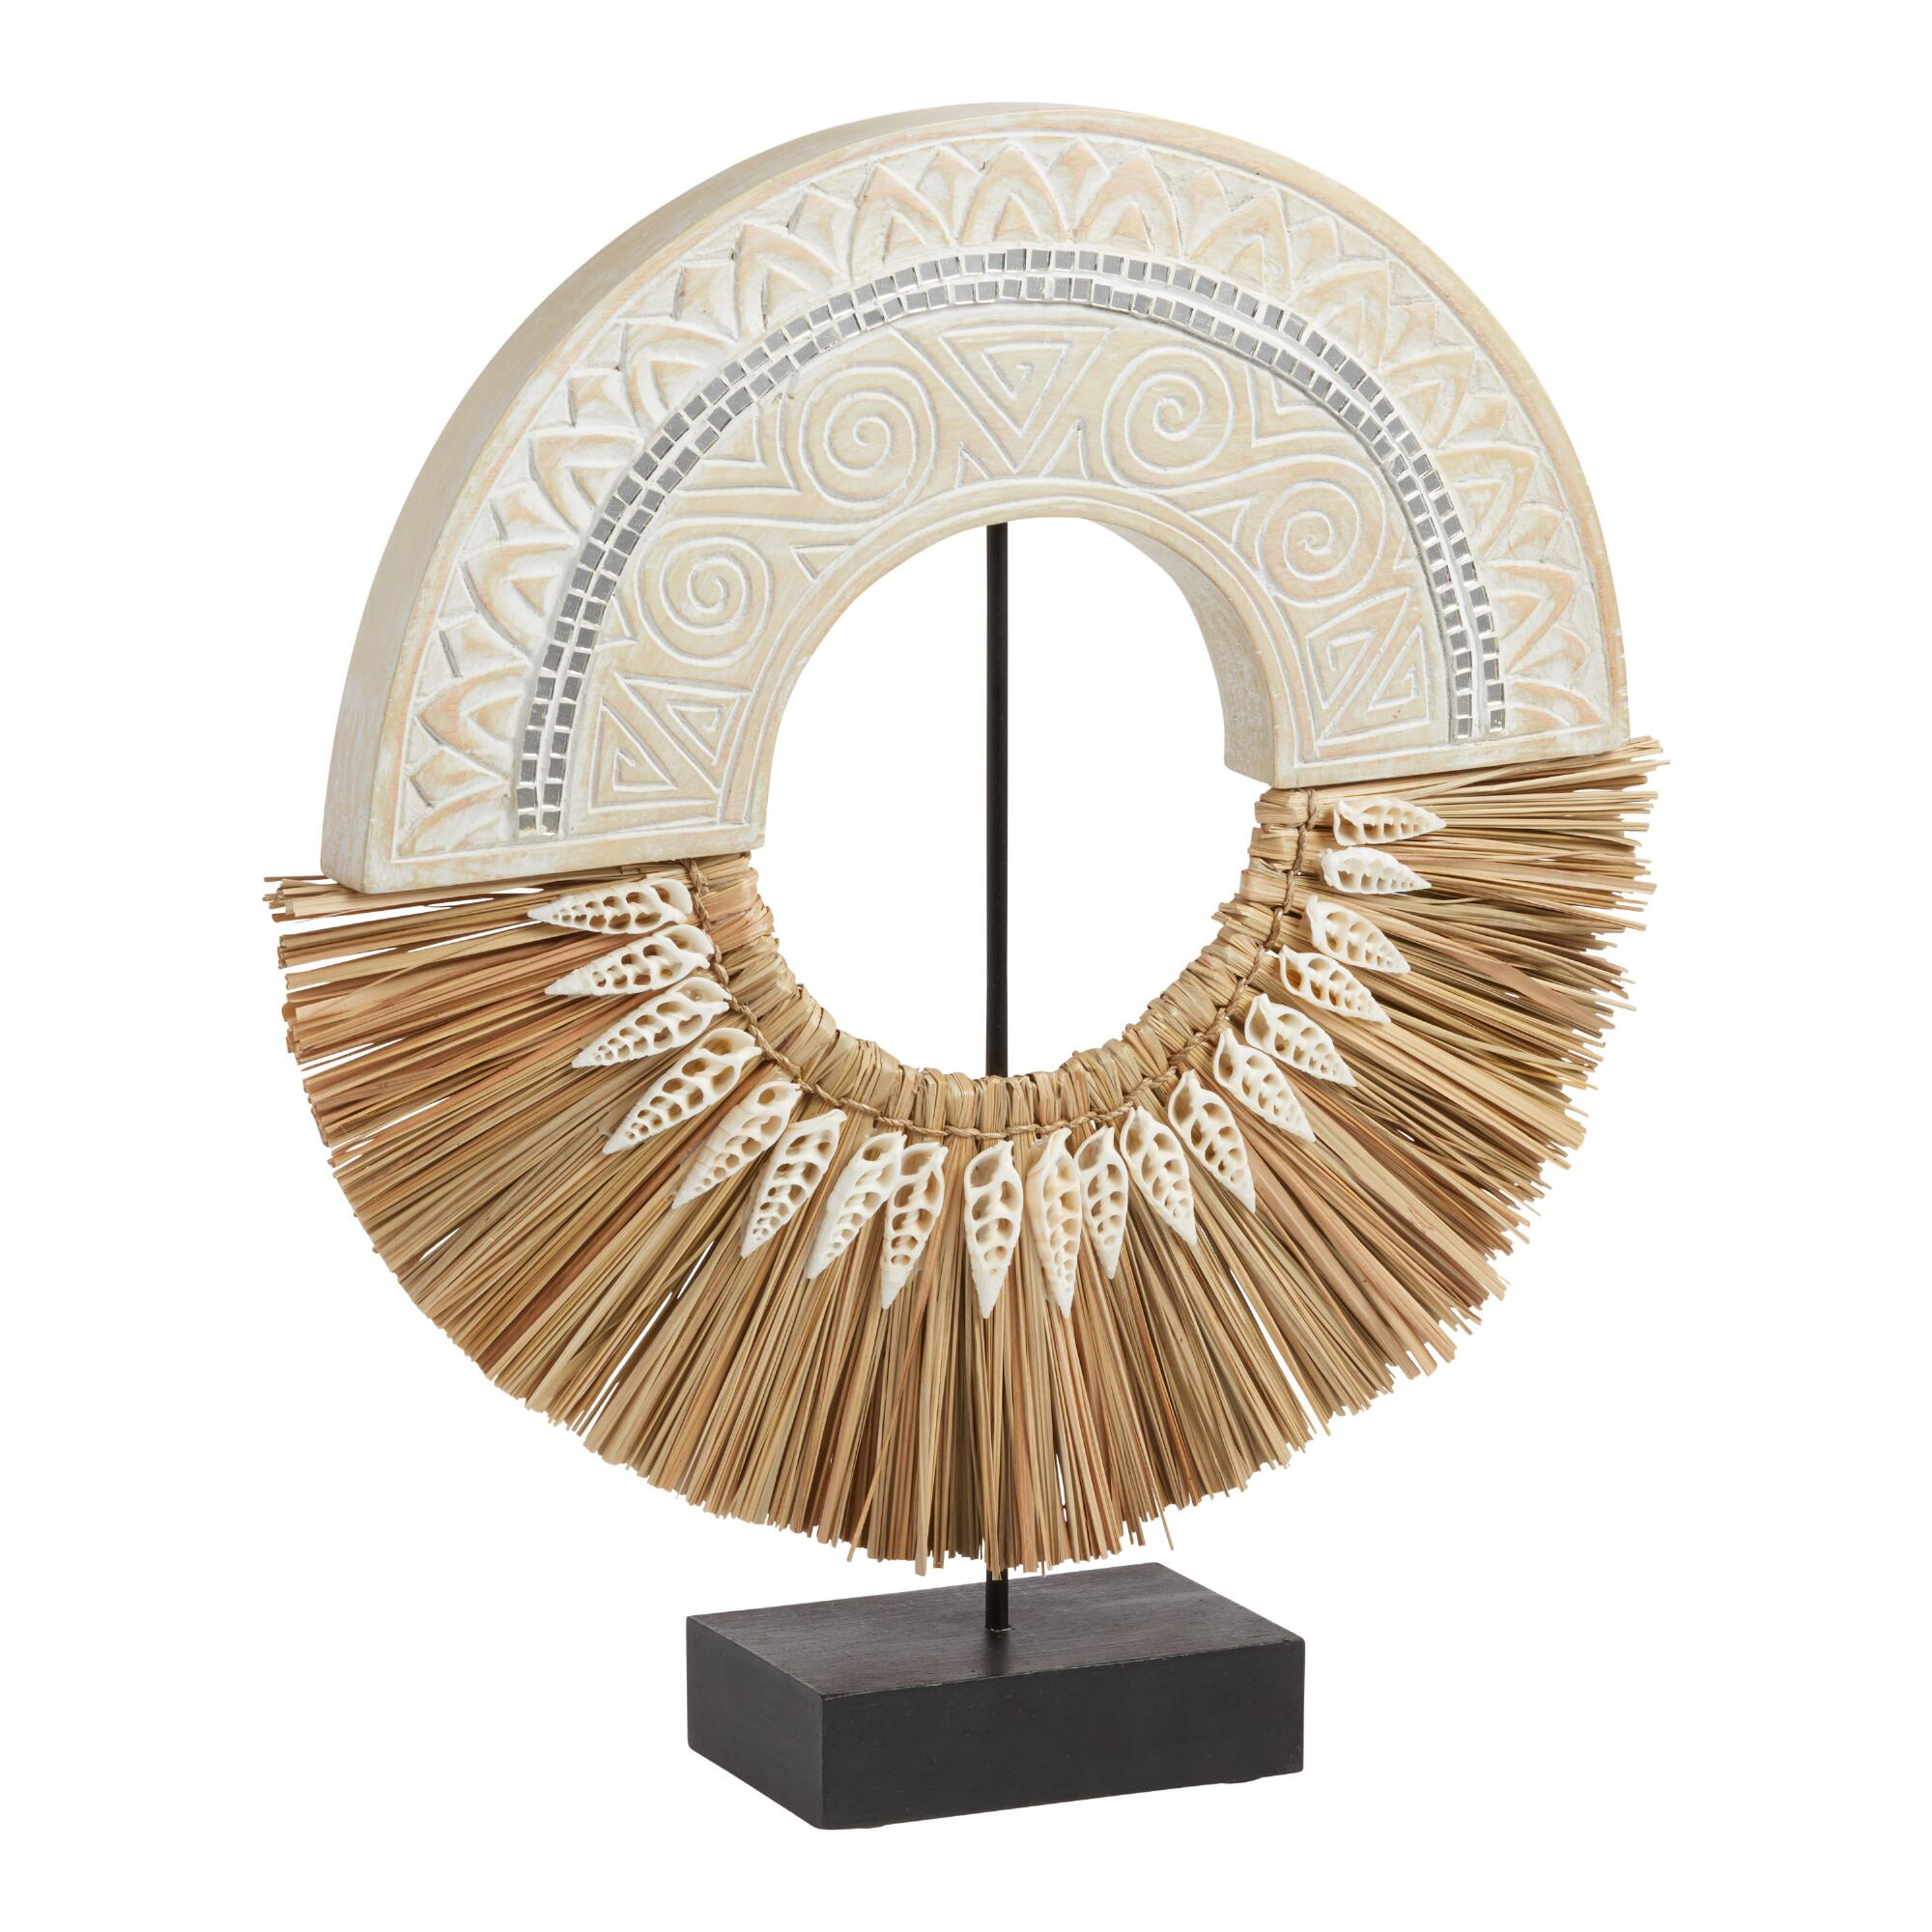 Carved Wood And Grass Ring Decor On Stand $69.99